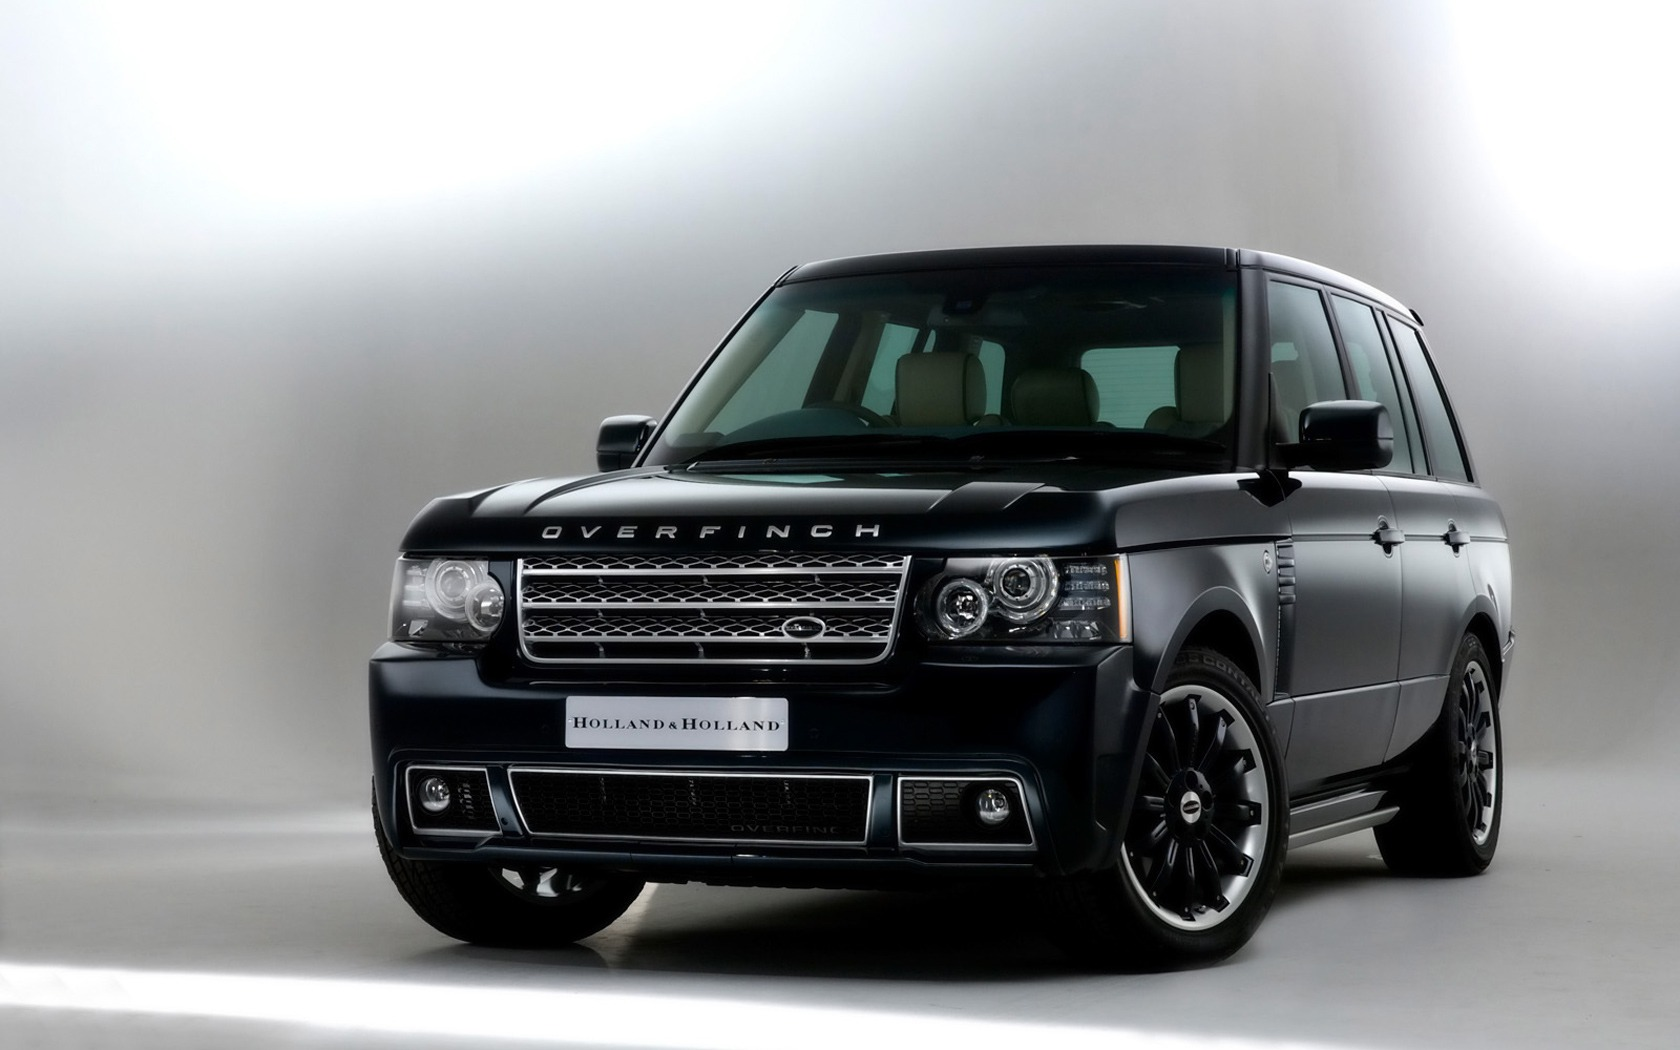 Range Rover Overfinch Wallpaper Range Rover Cars Wallpapers In Jpg